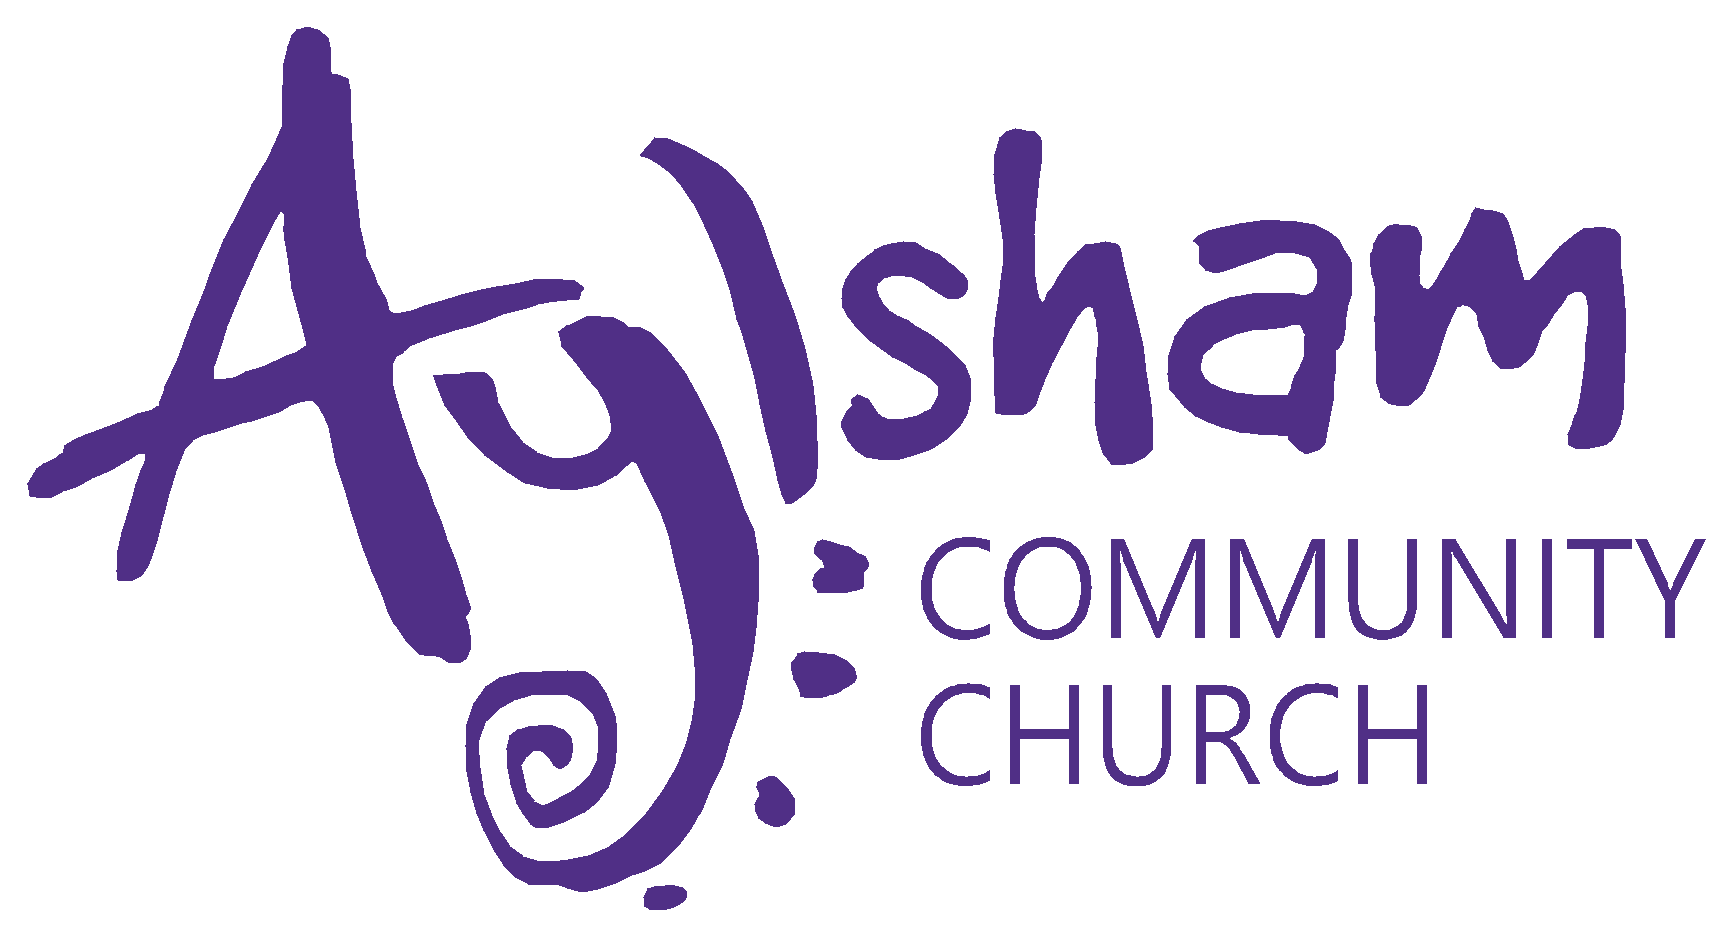 Aylsham Community Church